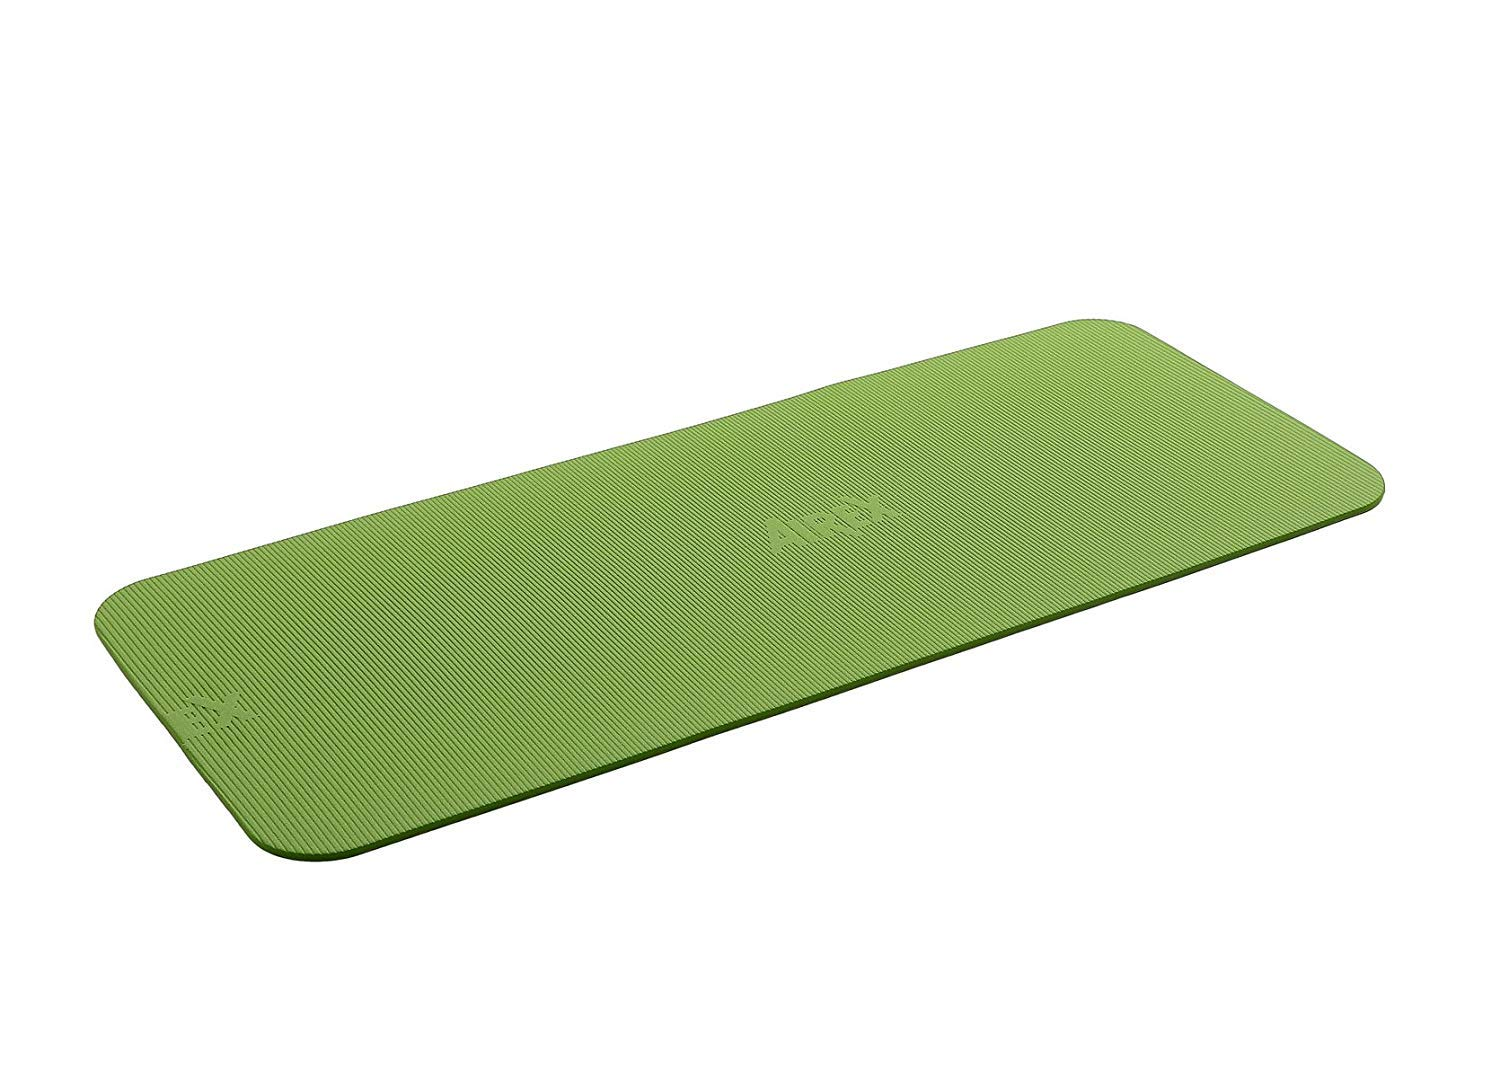 Amazon.com: FEI Airex Exercise Mat - Fitline 140, Lime, 23 ...